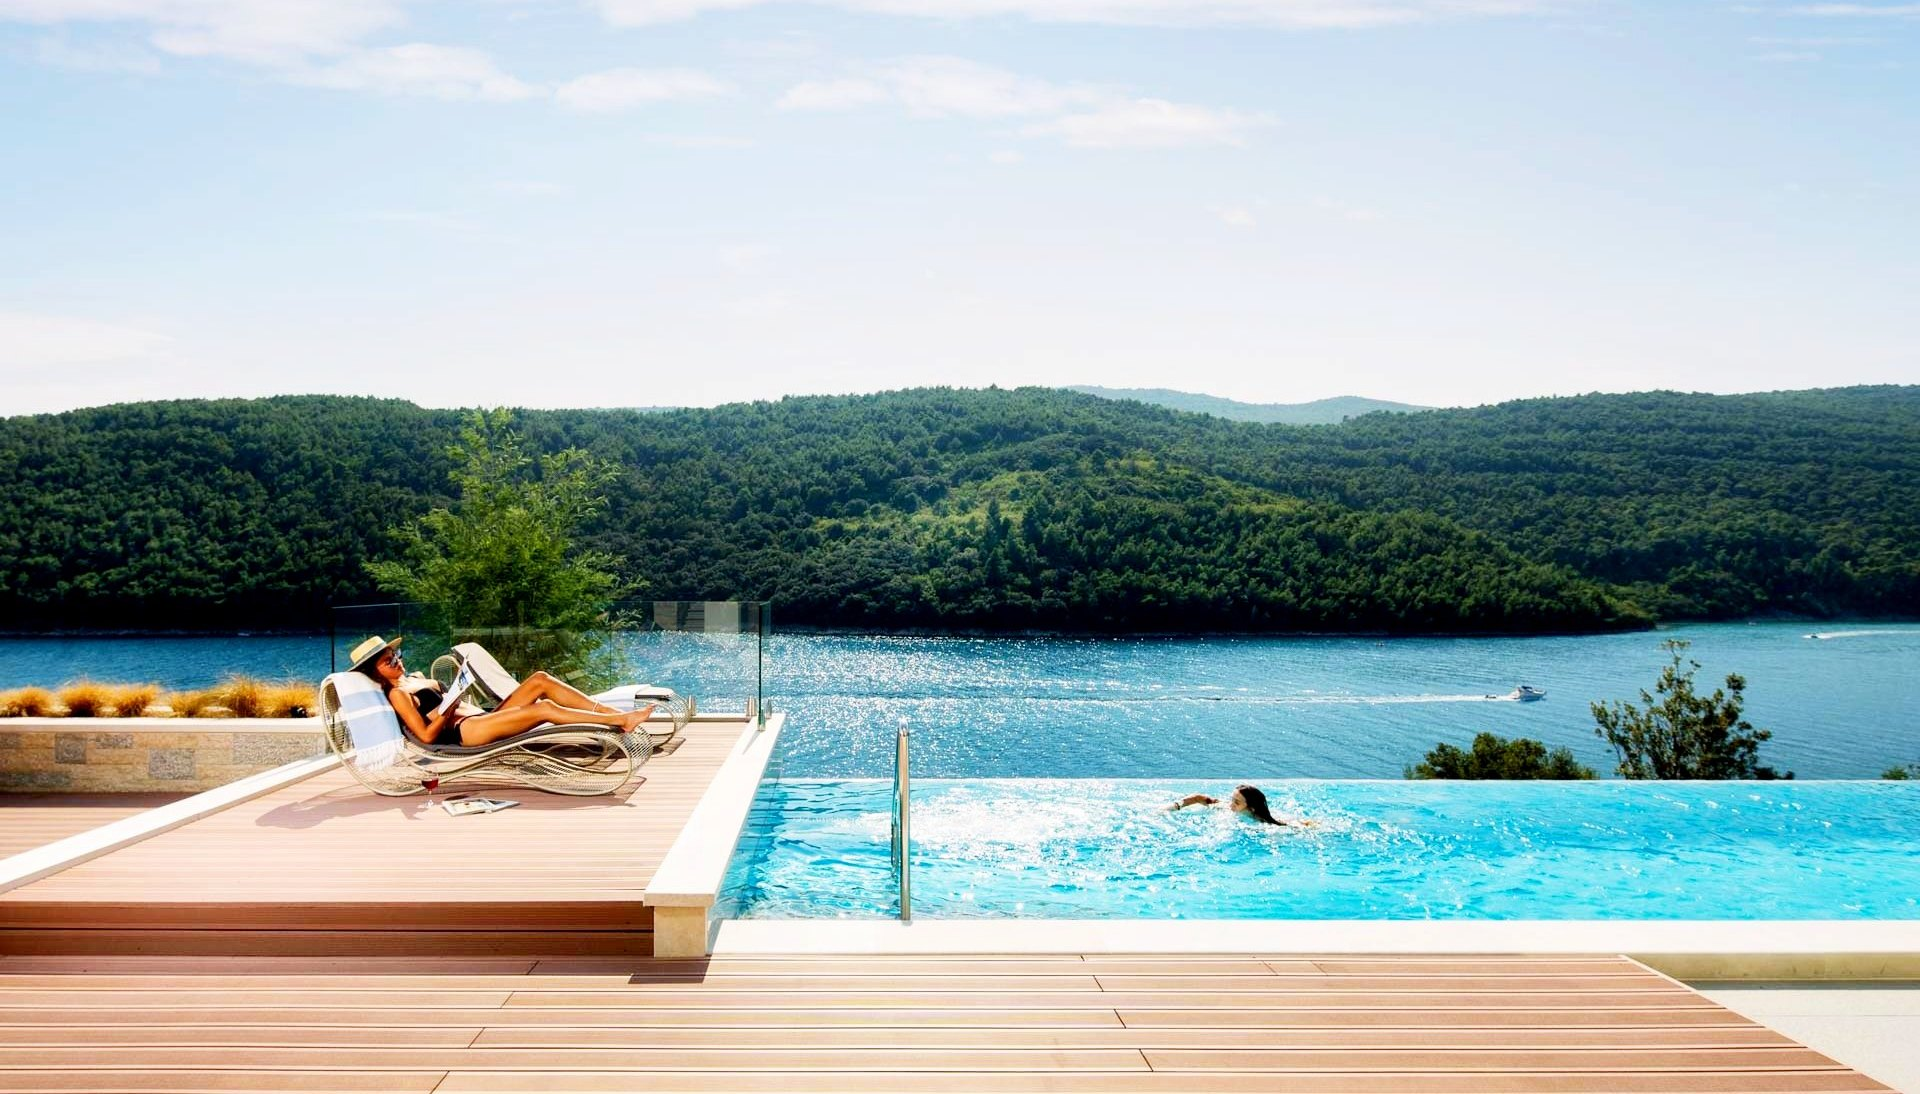 Croatian villa with pool